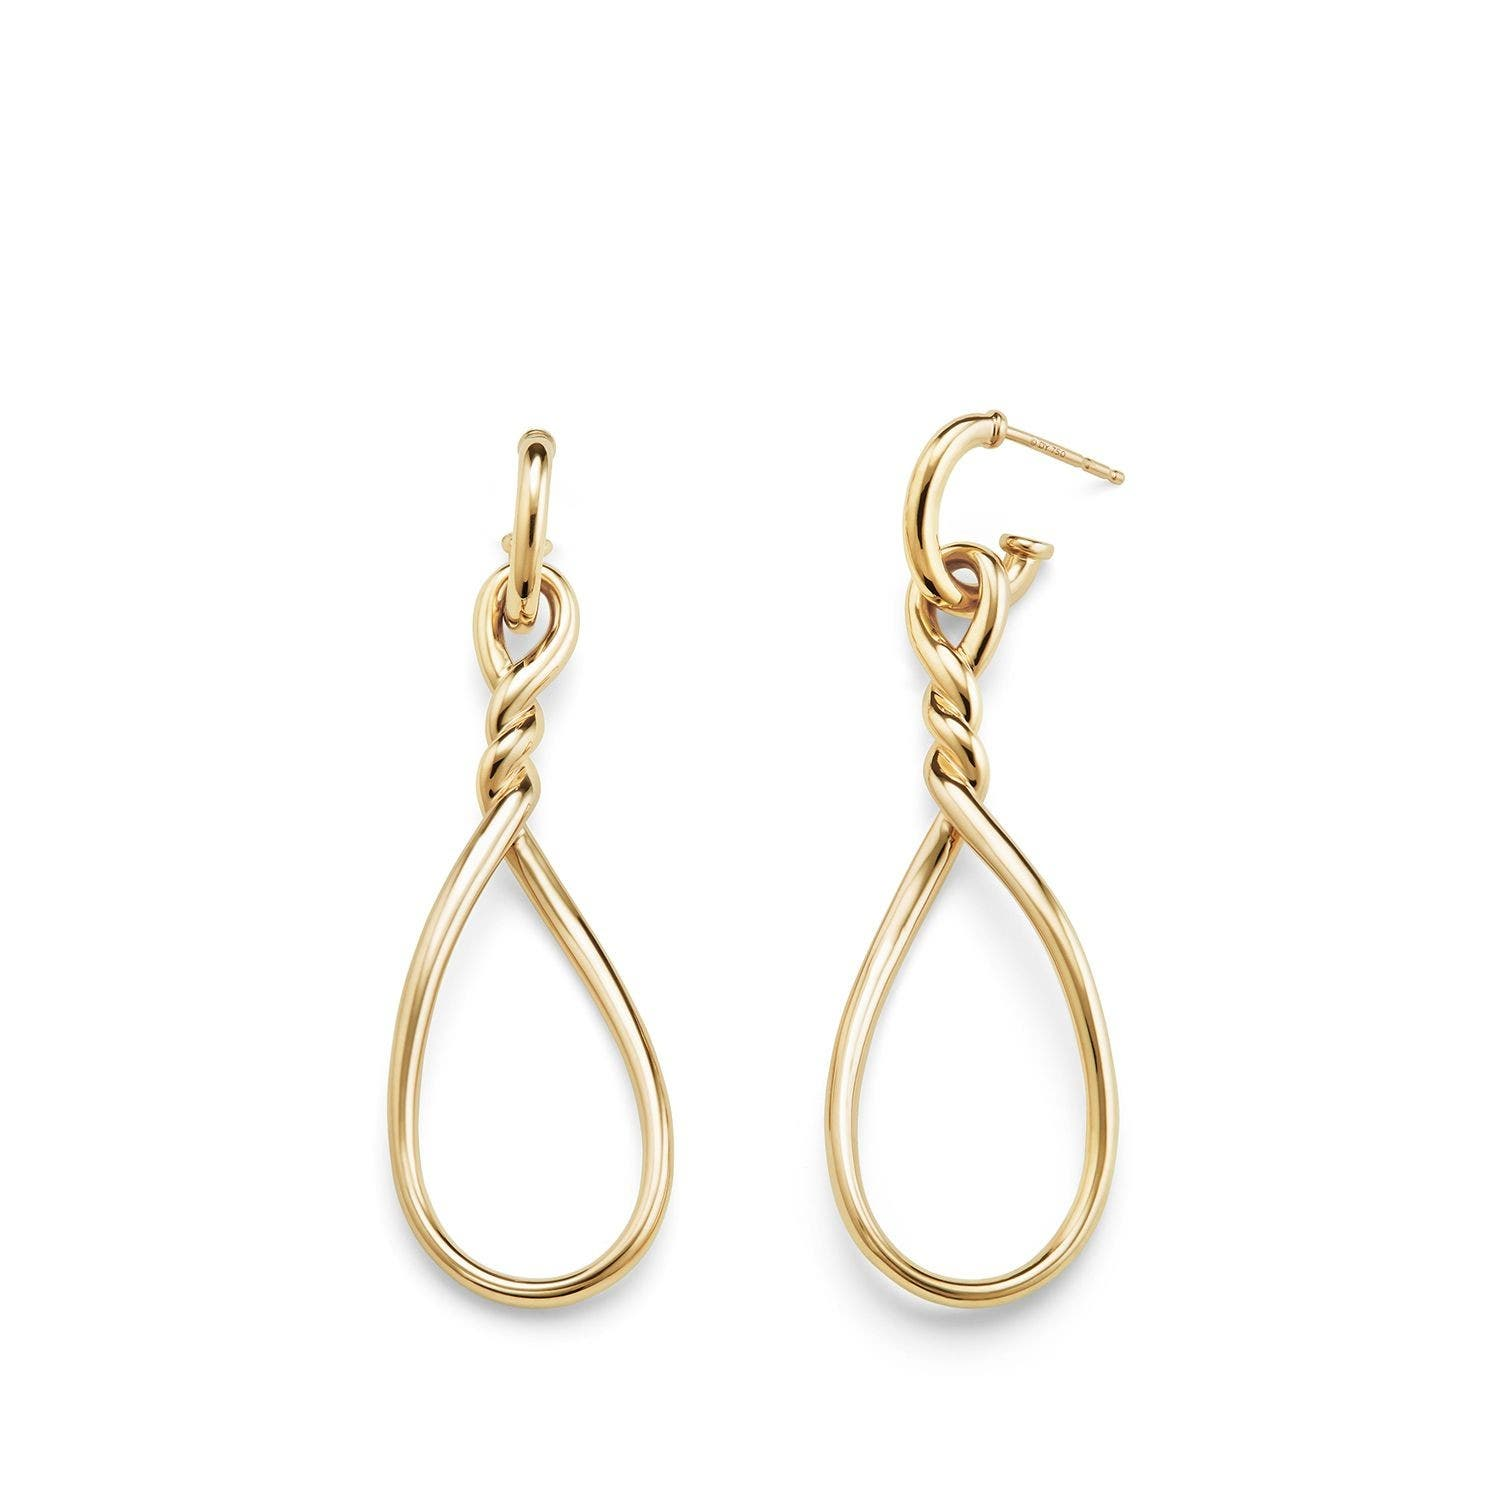 Continuance Drop Earrings,                             Alternate thumbnail 2, color,                             Yellow Gold